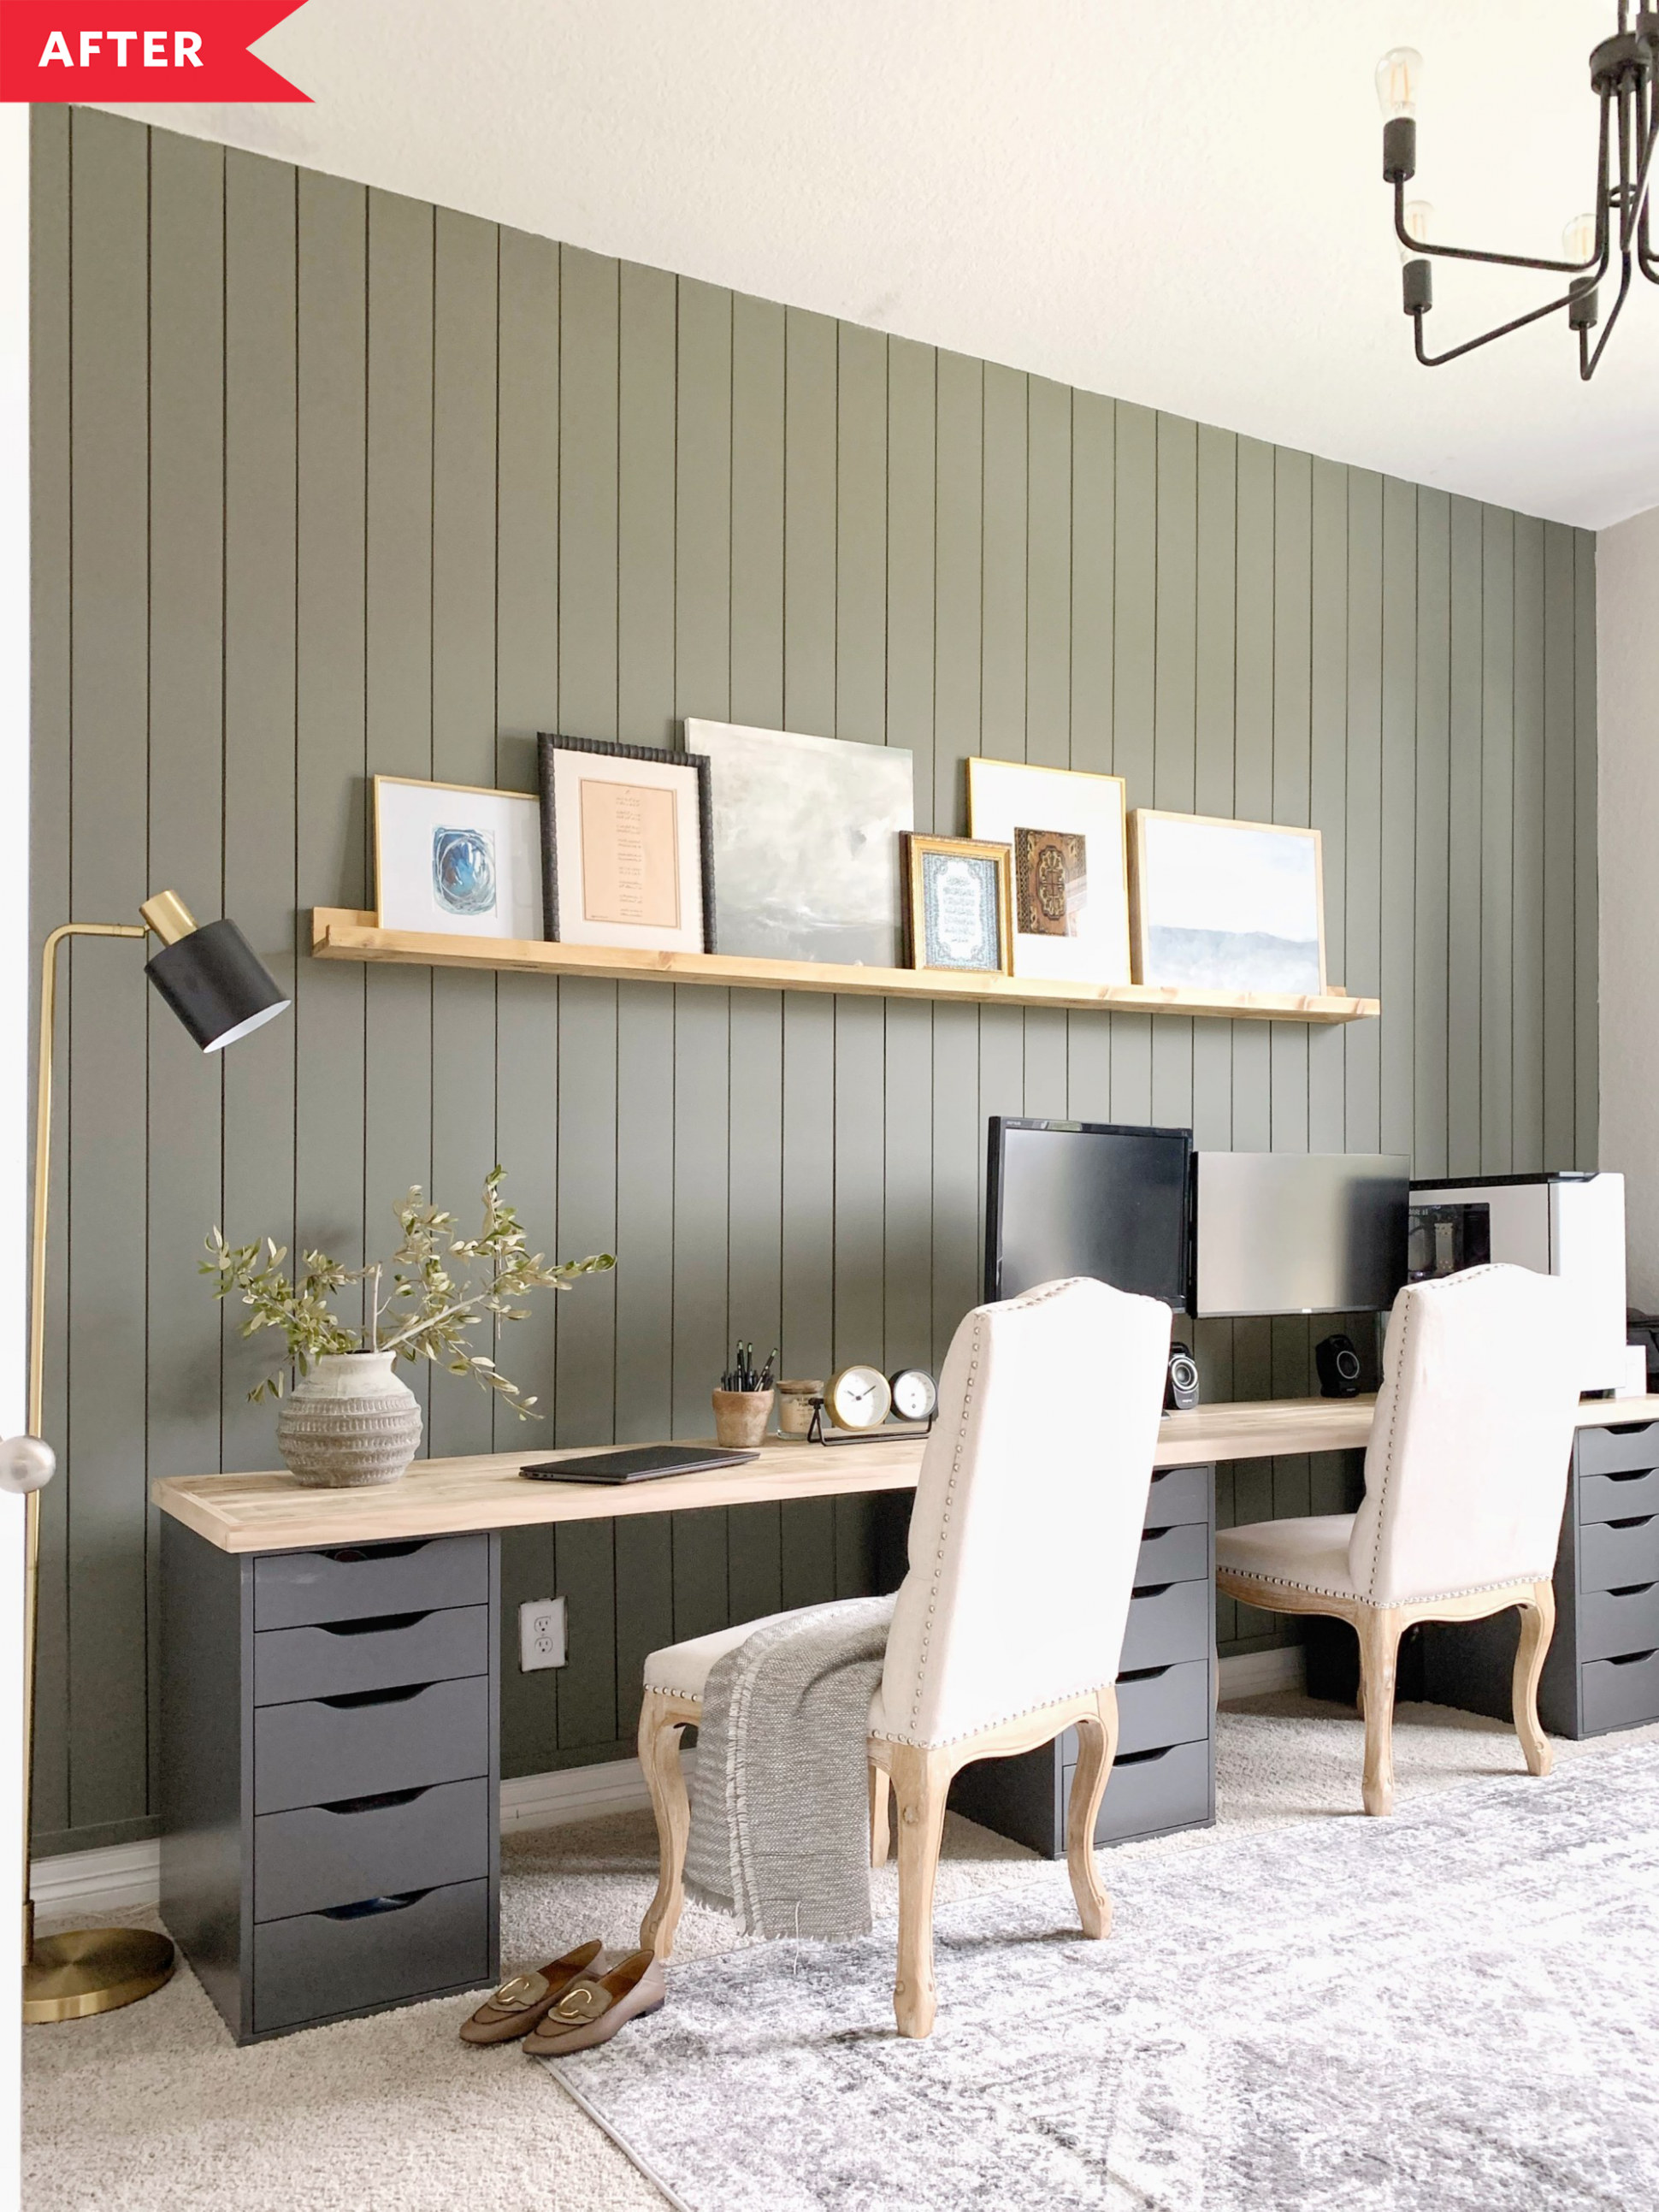 8 Best Home Office Redos - Cool Home Office Makeover Ideas  - Home Office Redo Ideas